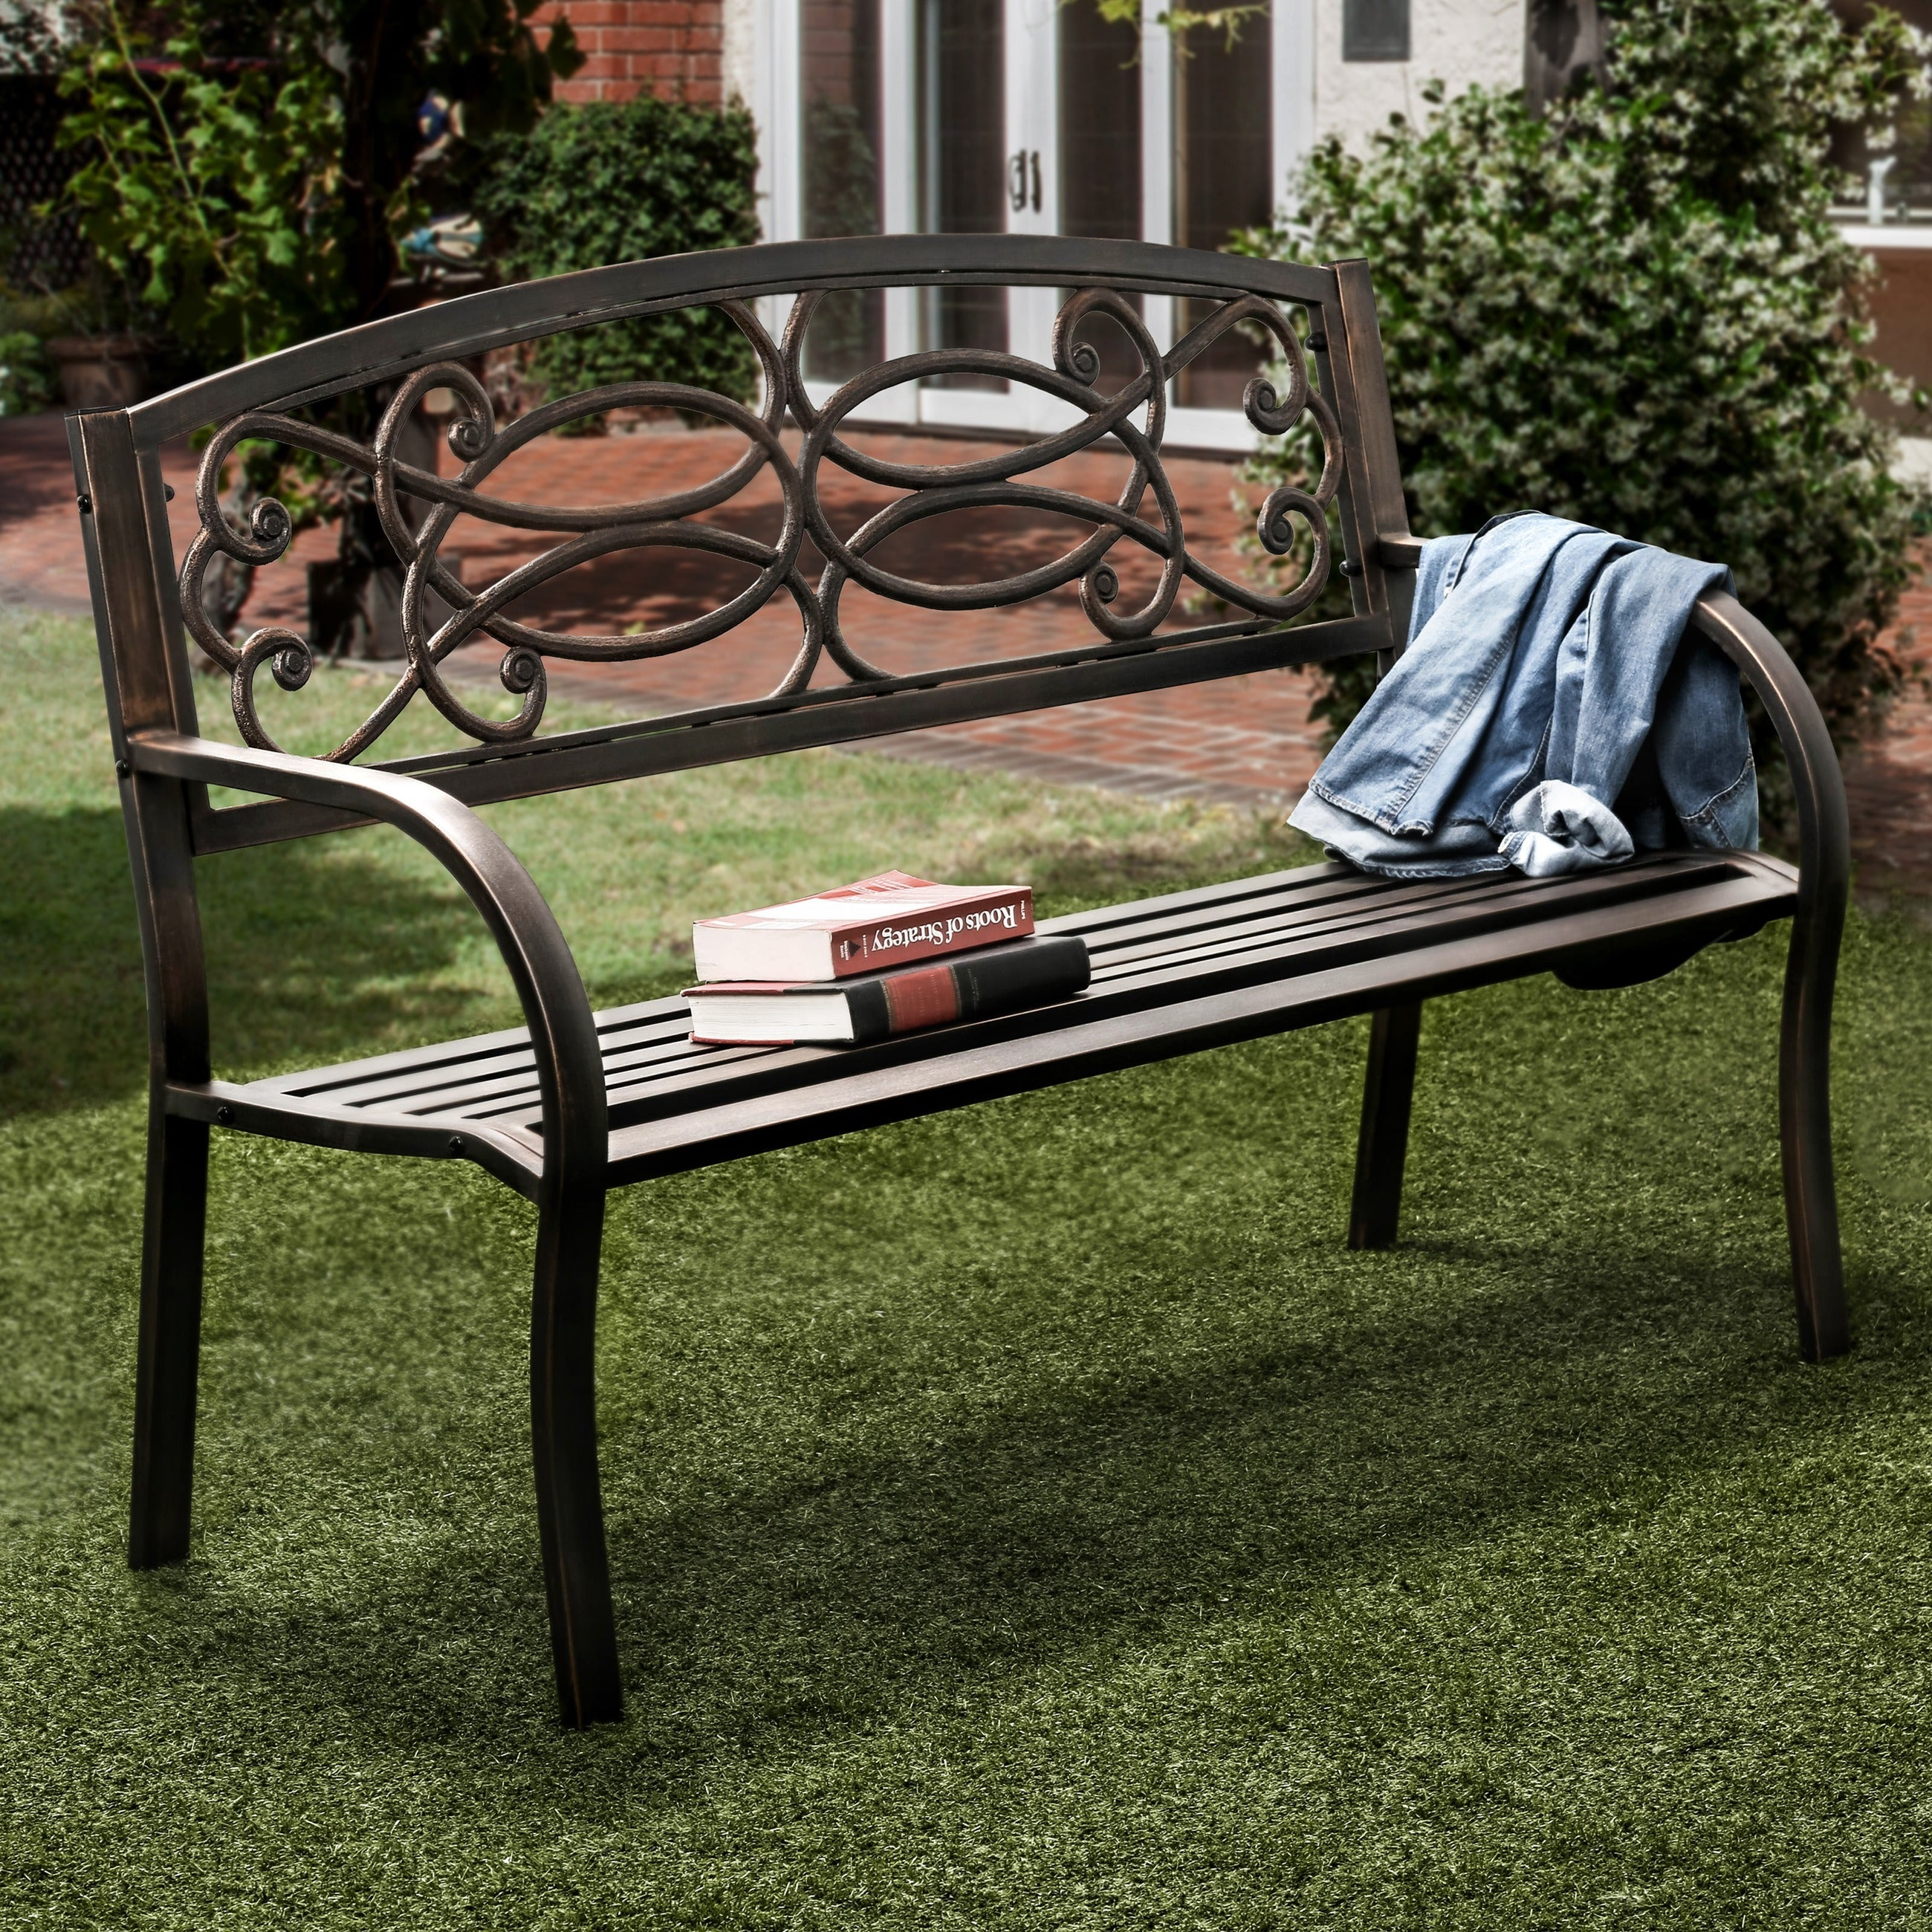 from best sets tempered products park piece benestuff choice ideas w for set bench furniture patio amazing com luxury wicker benches metal